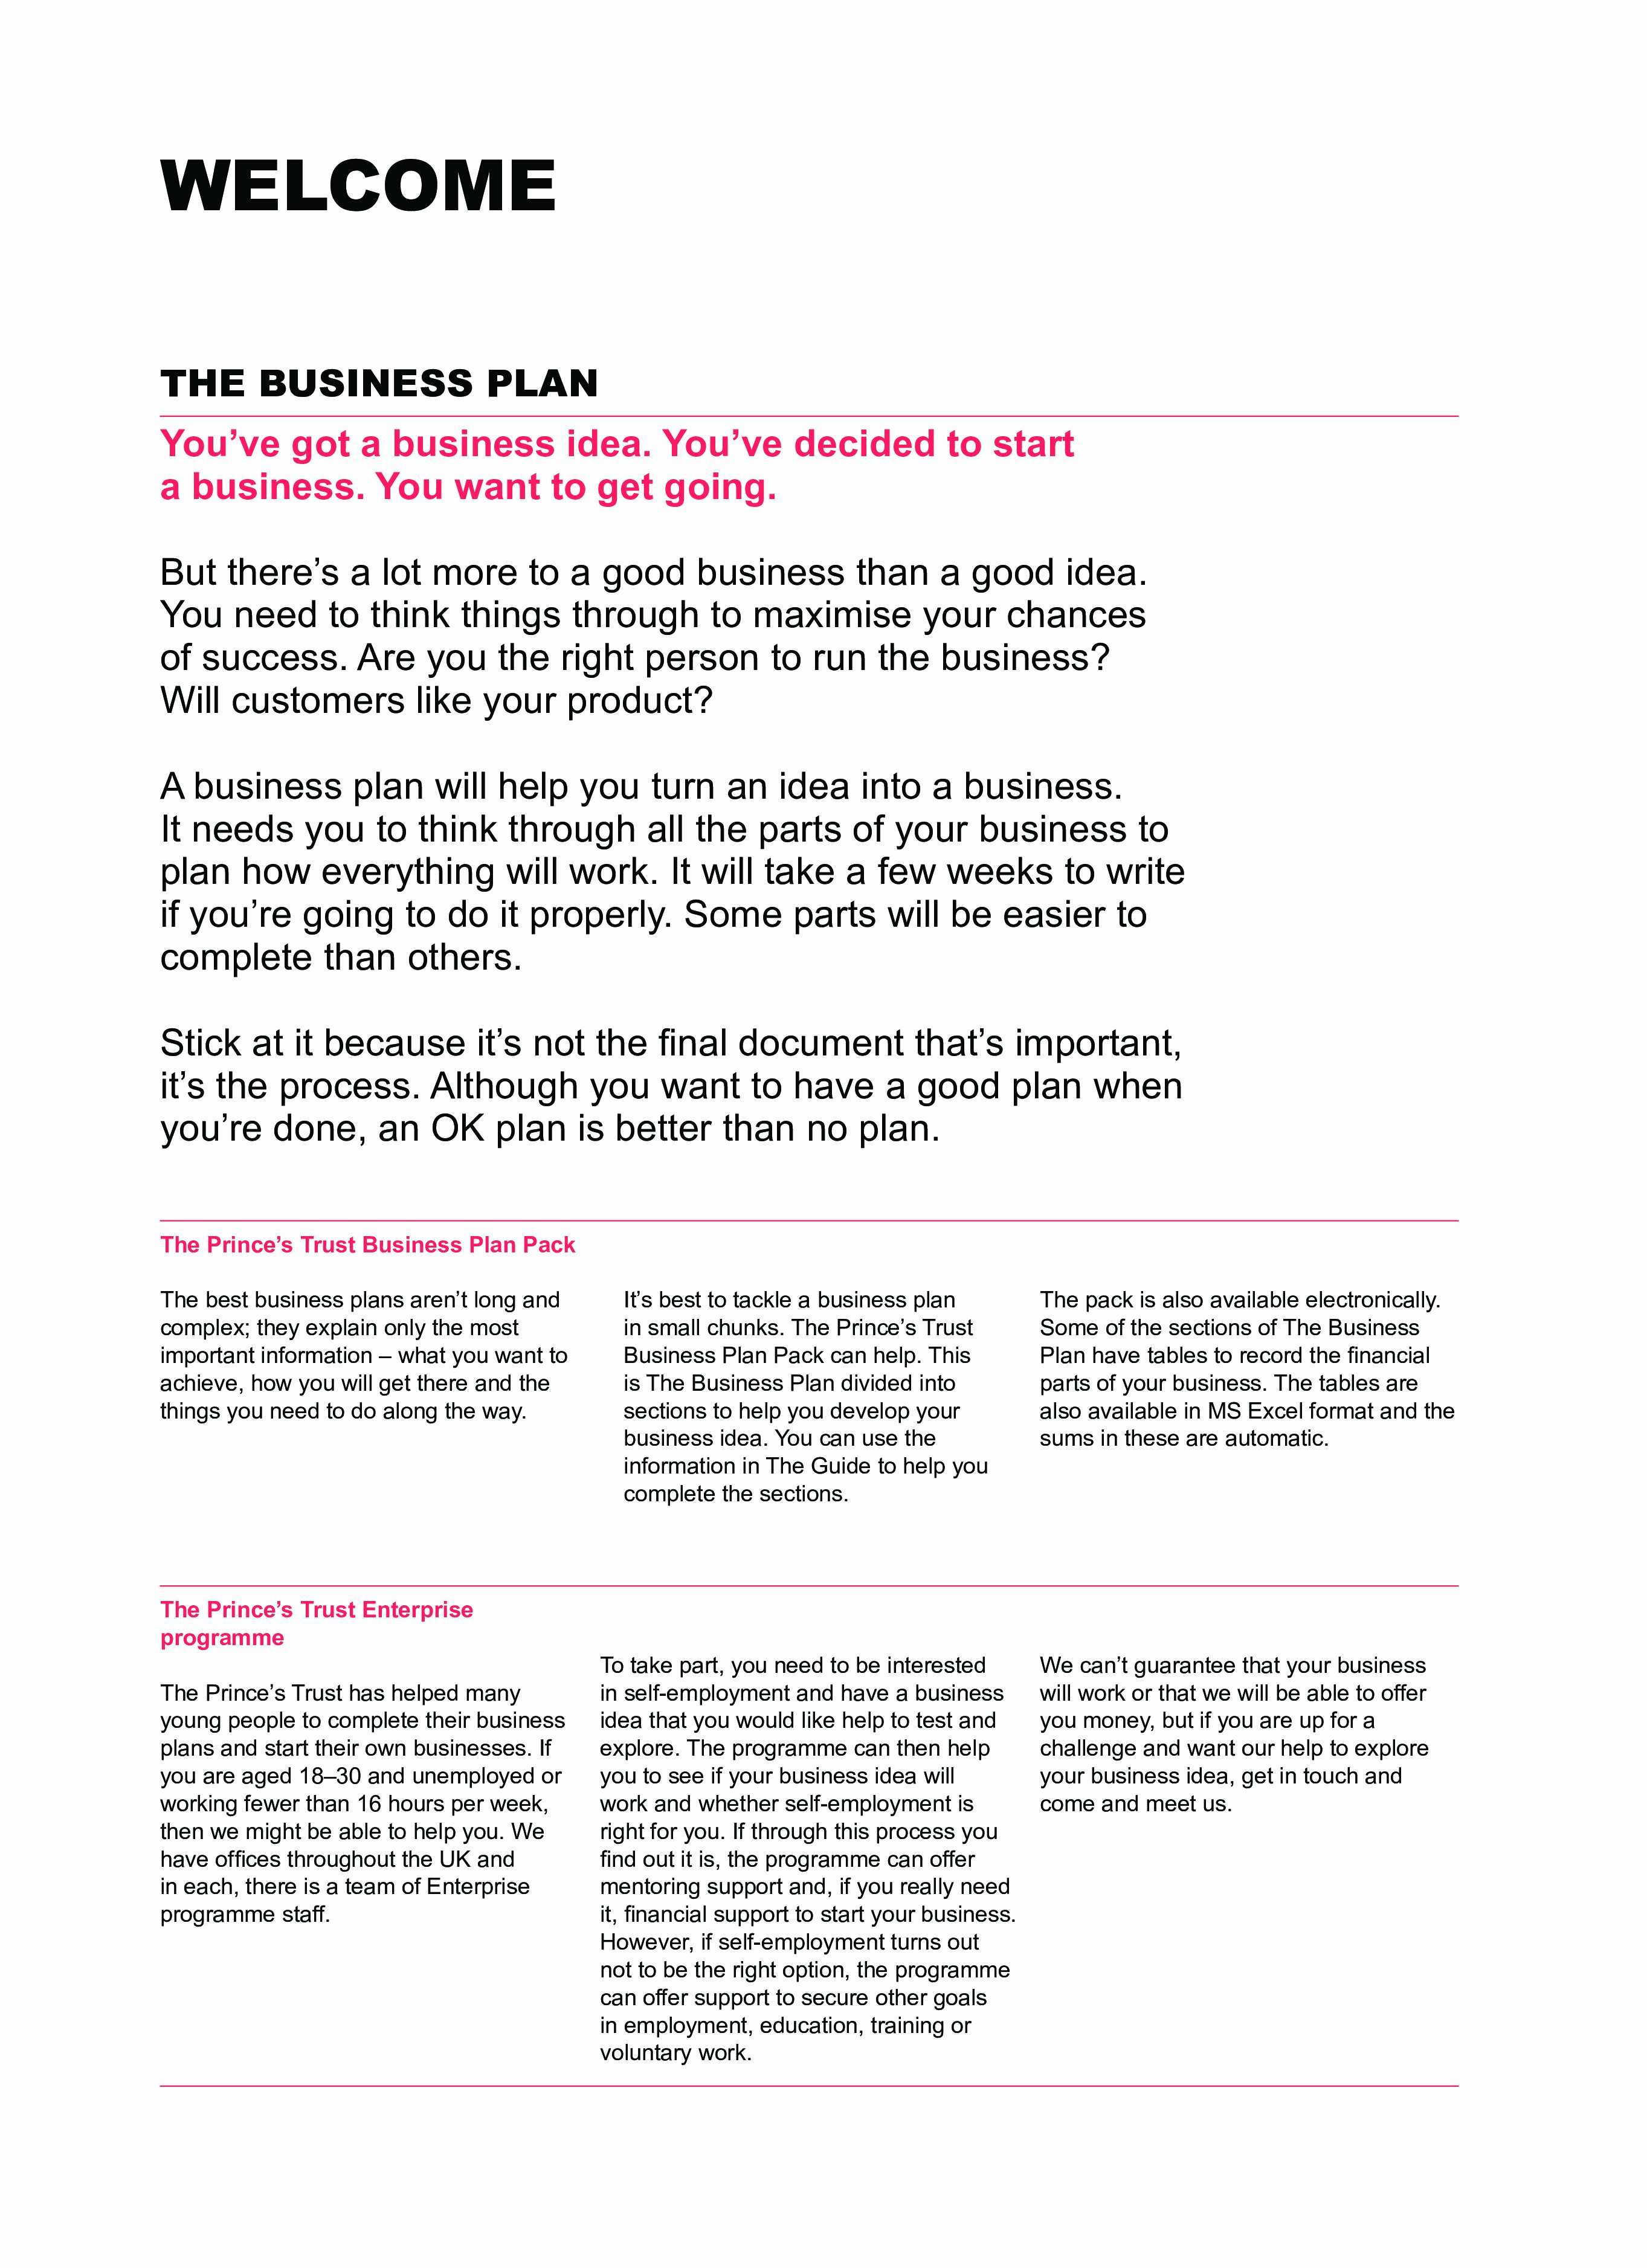 Basic Business Plan Template Free Awesome Financial Section A Business Plan Template Business